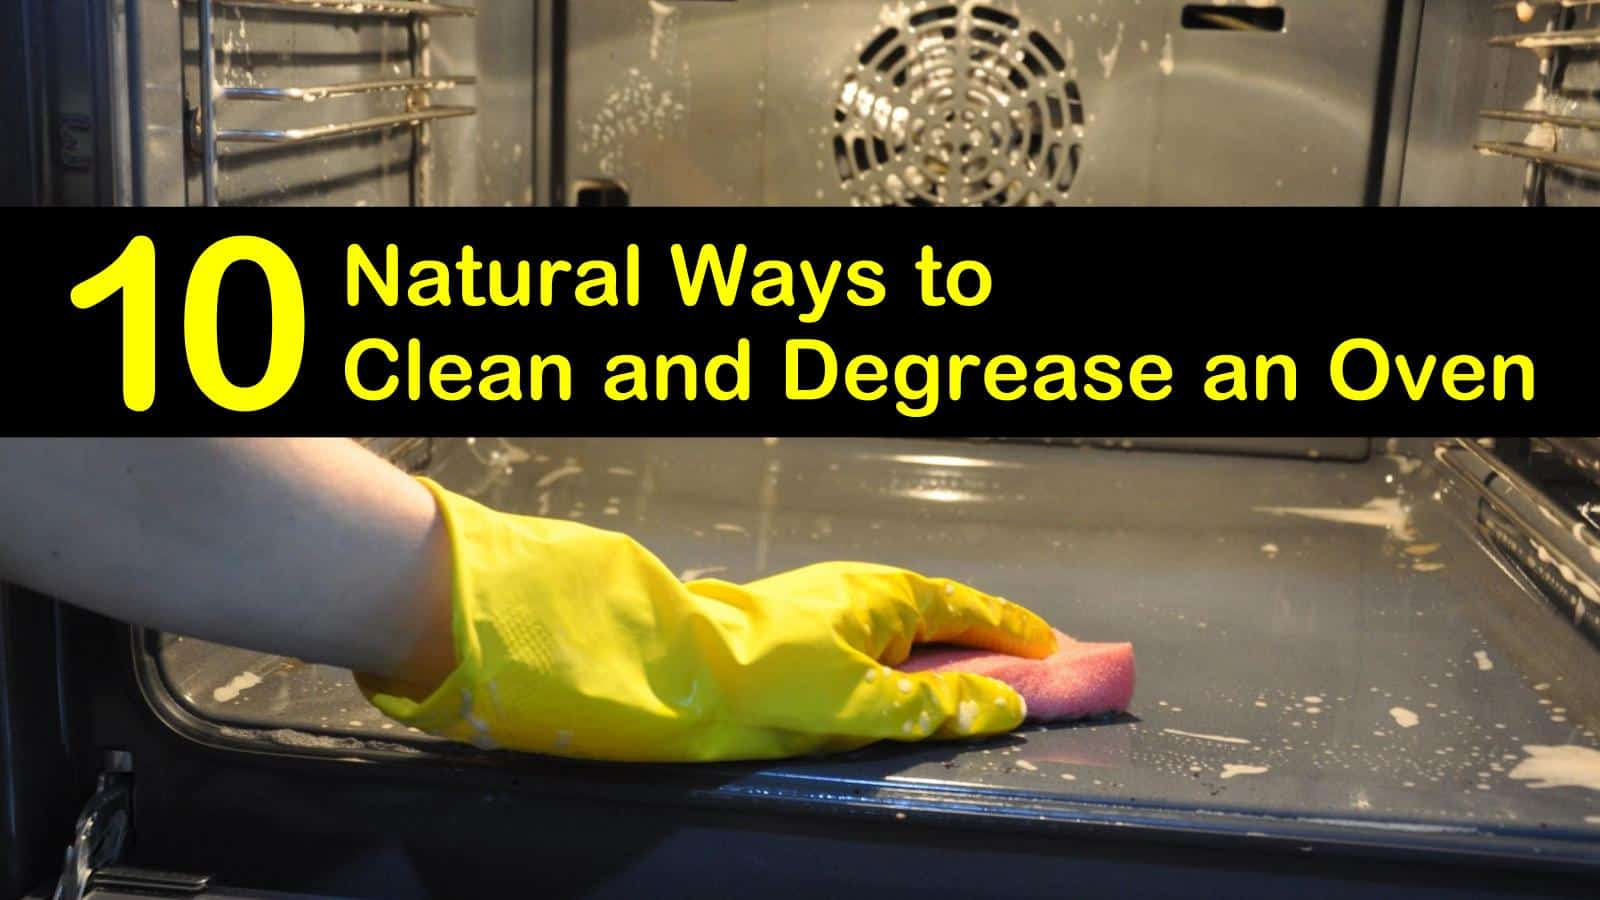 natural ways to clean an oven titleimg1